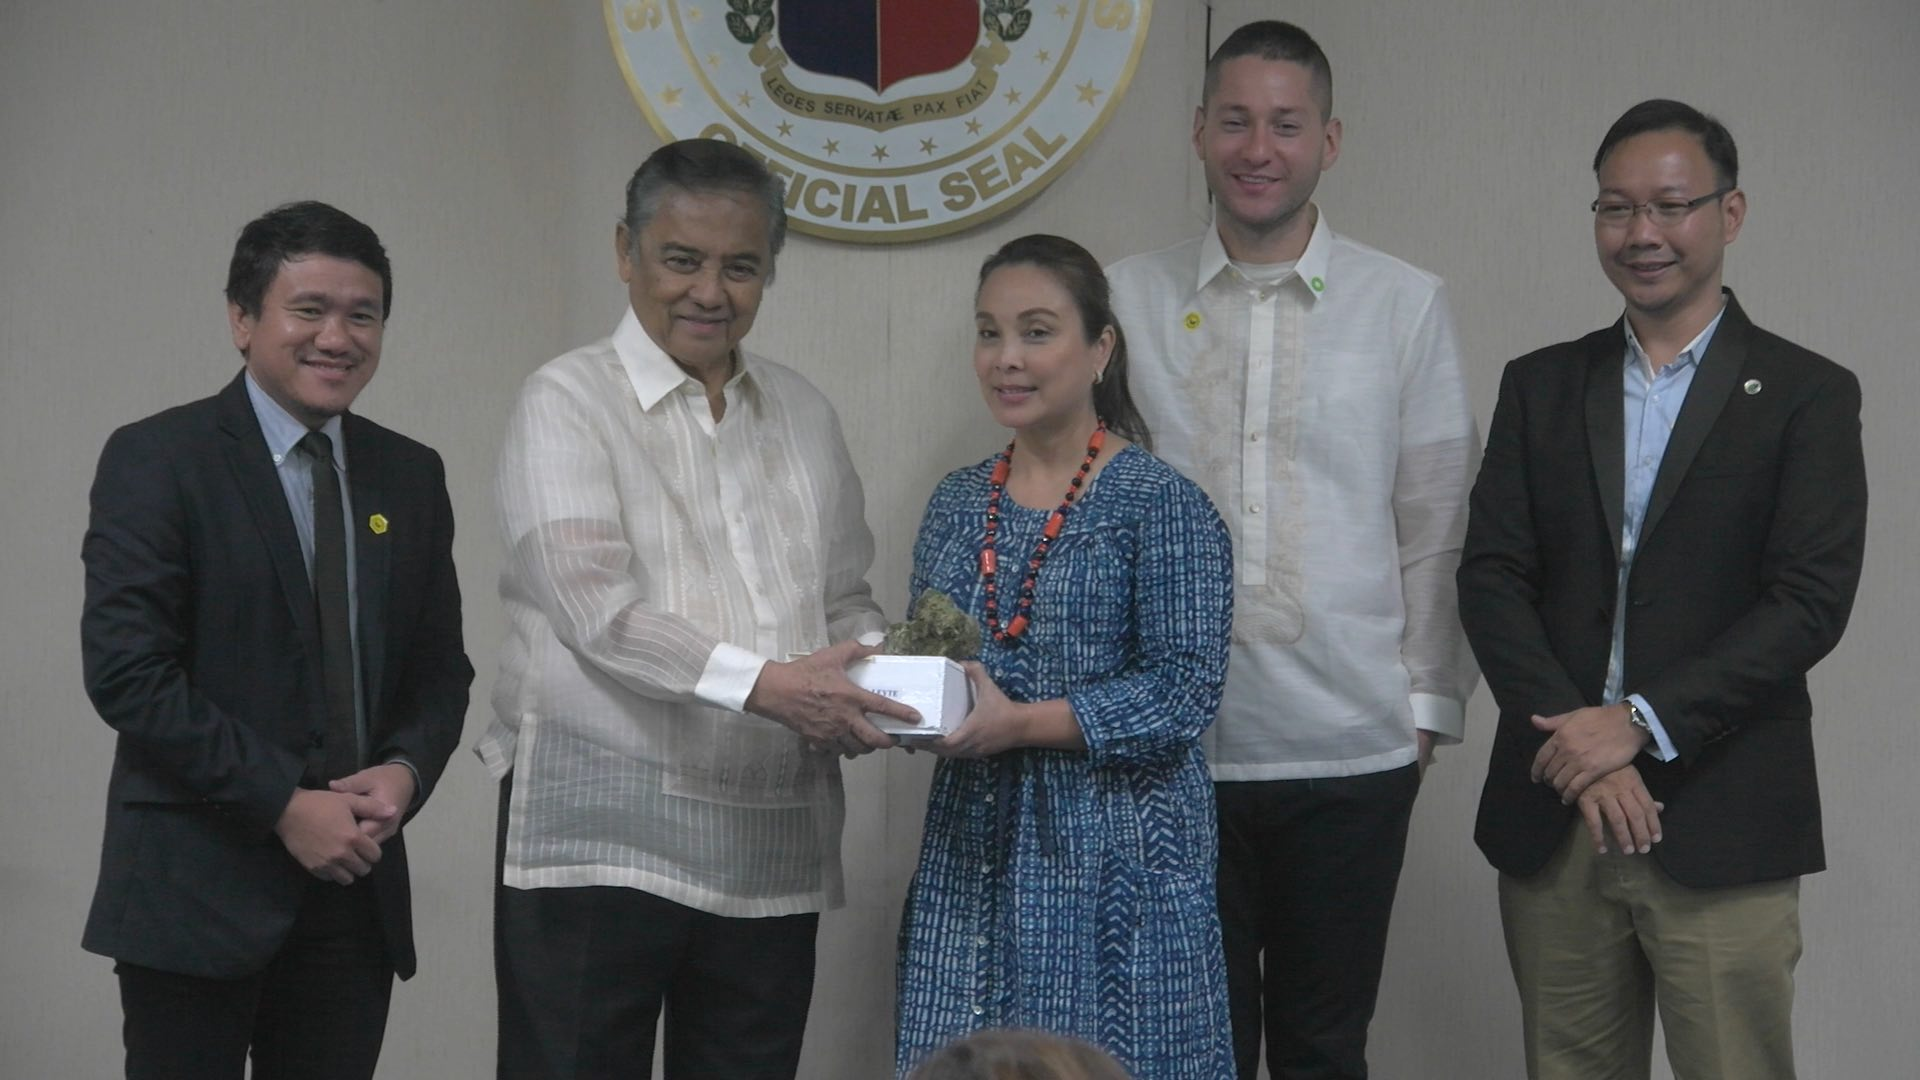 LUNTIANG KAPAWA. Senator Loren Legarda accepts the Luntiang Kapawa Award for shepherding the Senate's concurrence to the ratification of the historic Paris Agreement on Climate Change